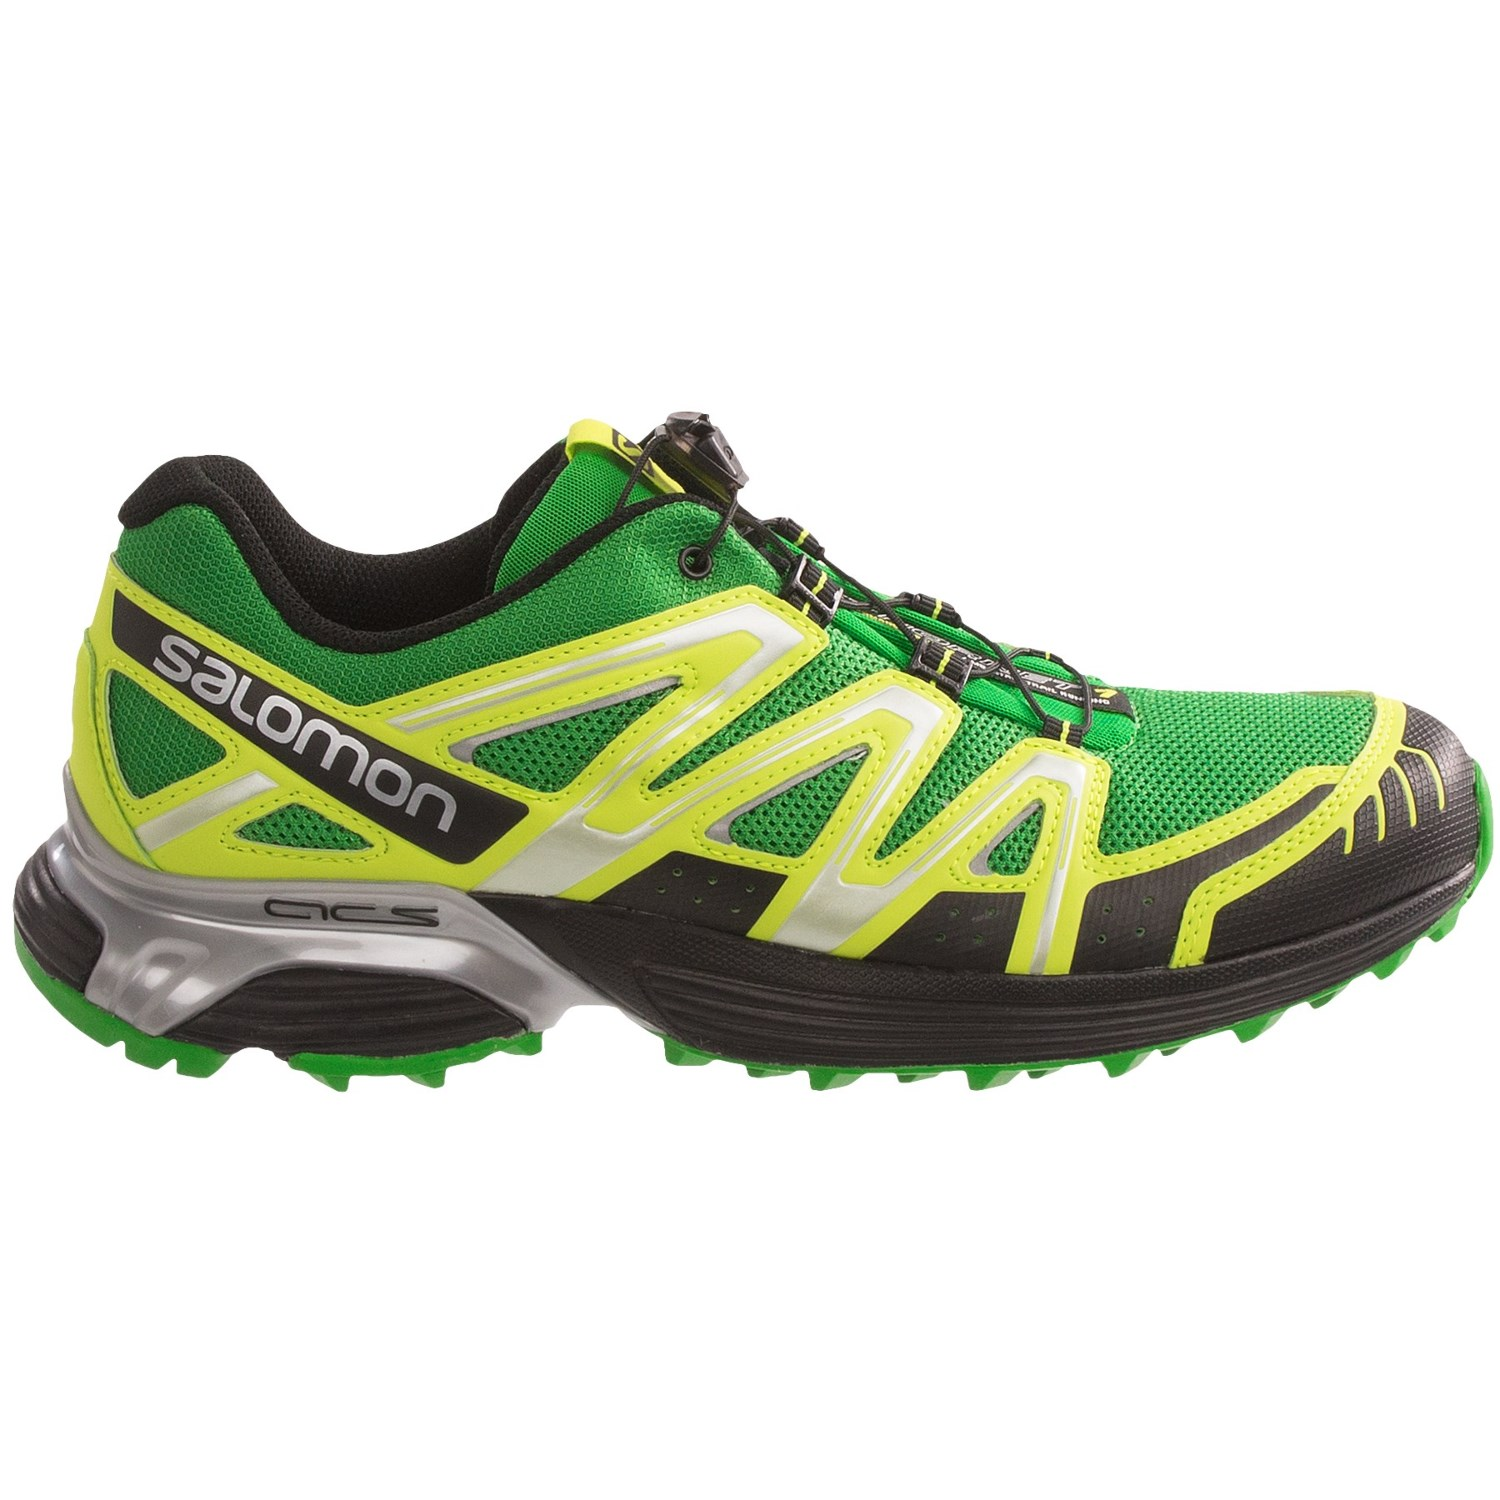 Salomon Xt Hornet Gore Tex Trail Running Shoes Review